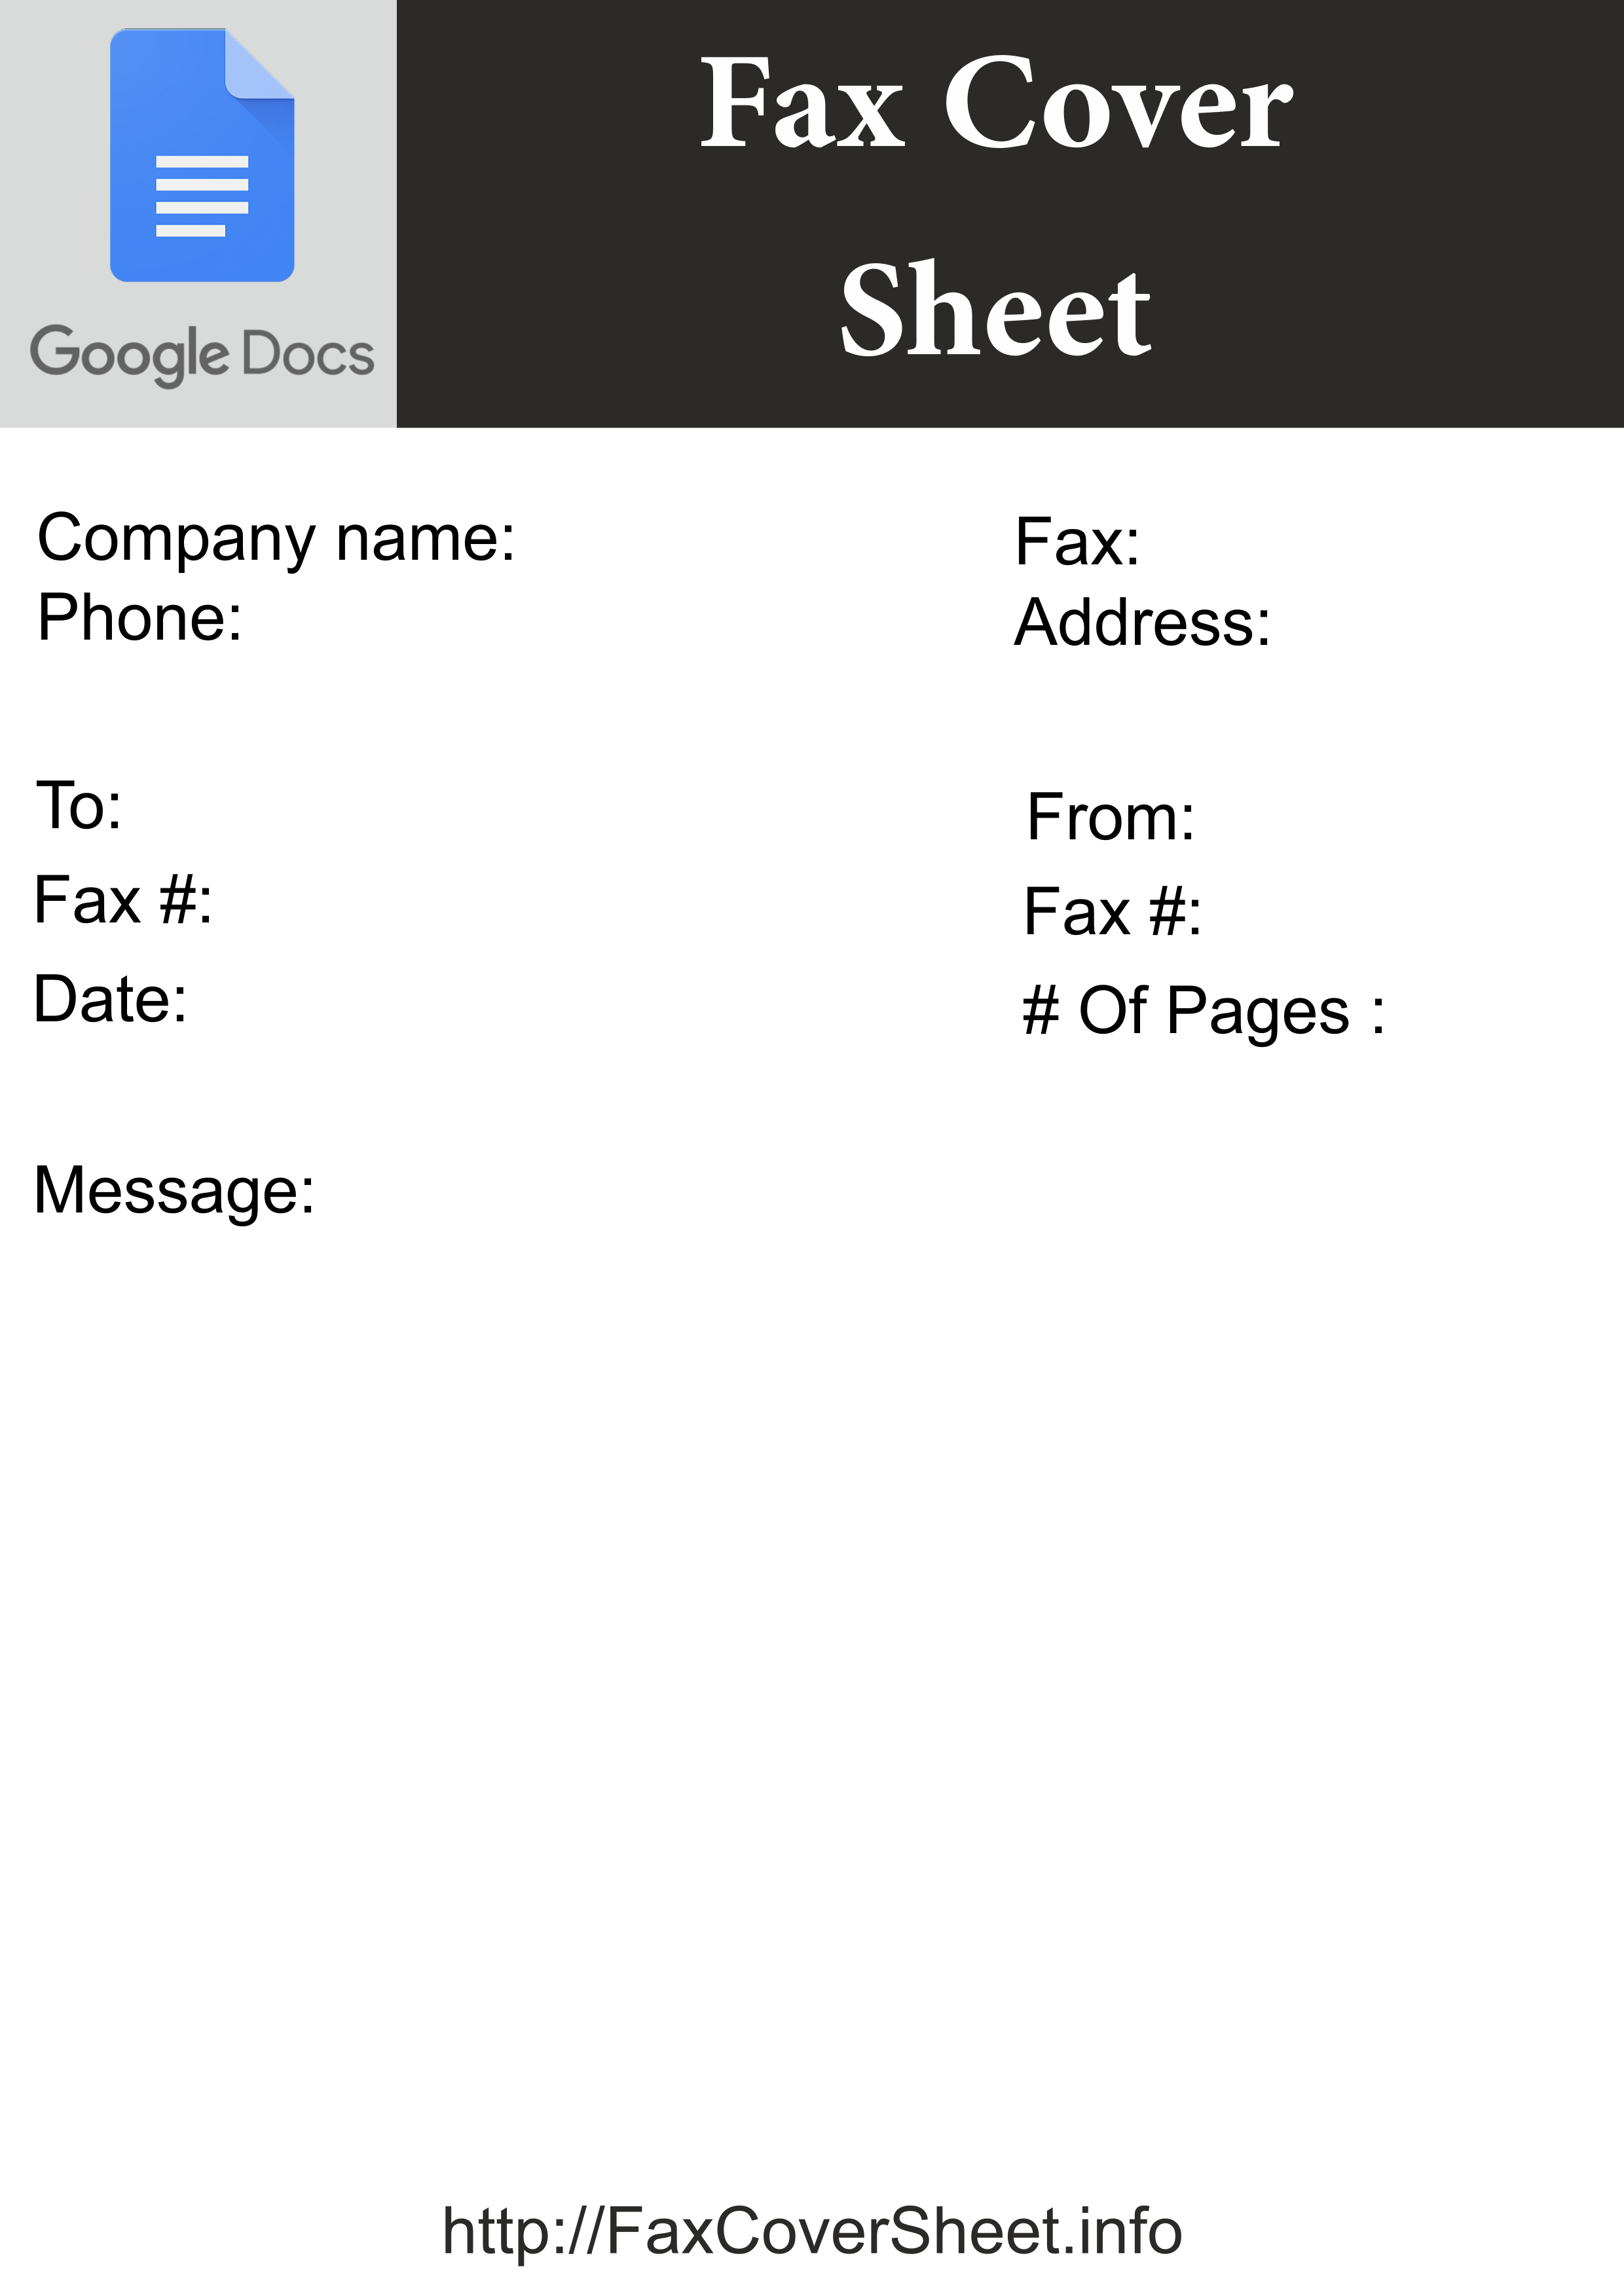 Fax Spreadsheet Pertaining To Ready To Use Google Docs Fax Cover Sheet  [Free]^^ Fax Cover Sheet